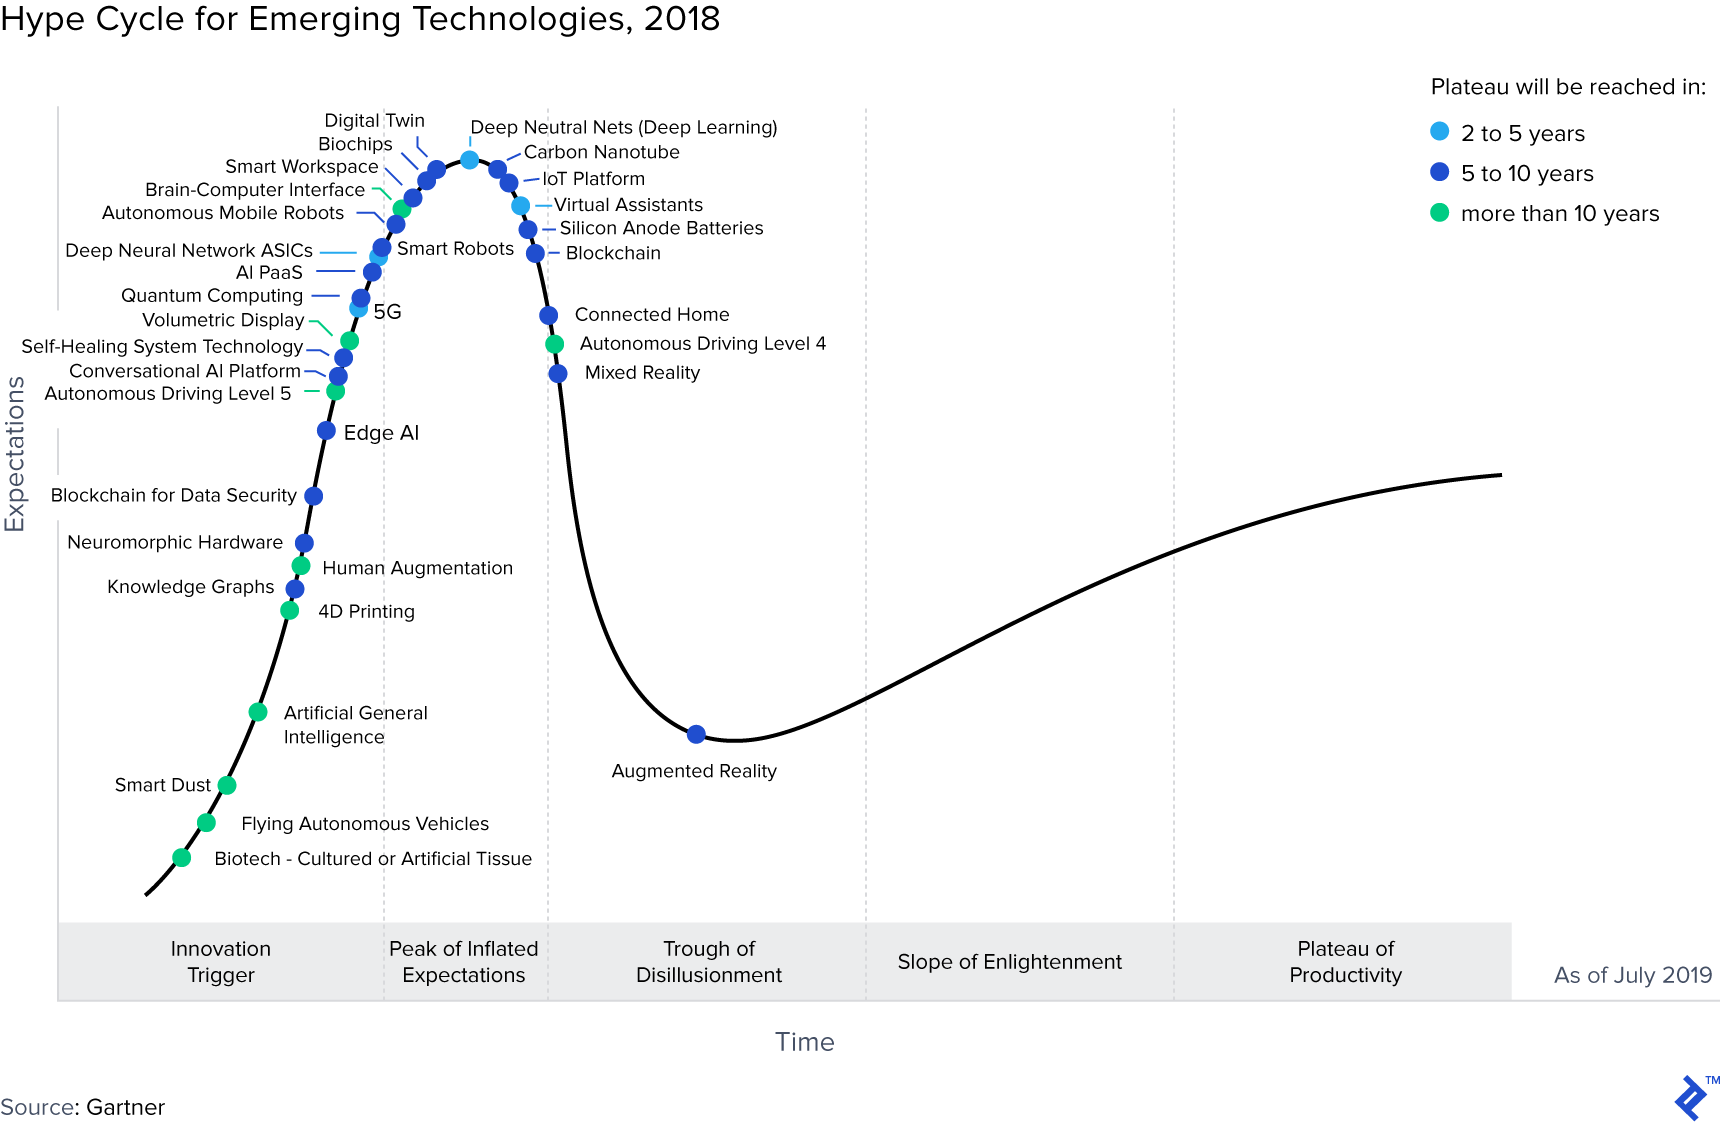 Graph showing the hype cycle for emerging technologies in 2018.